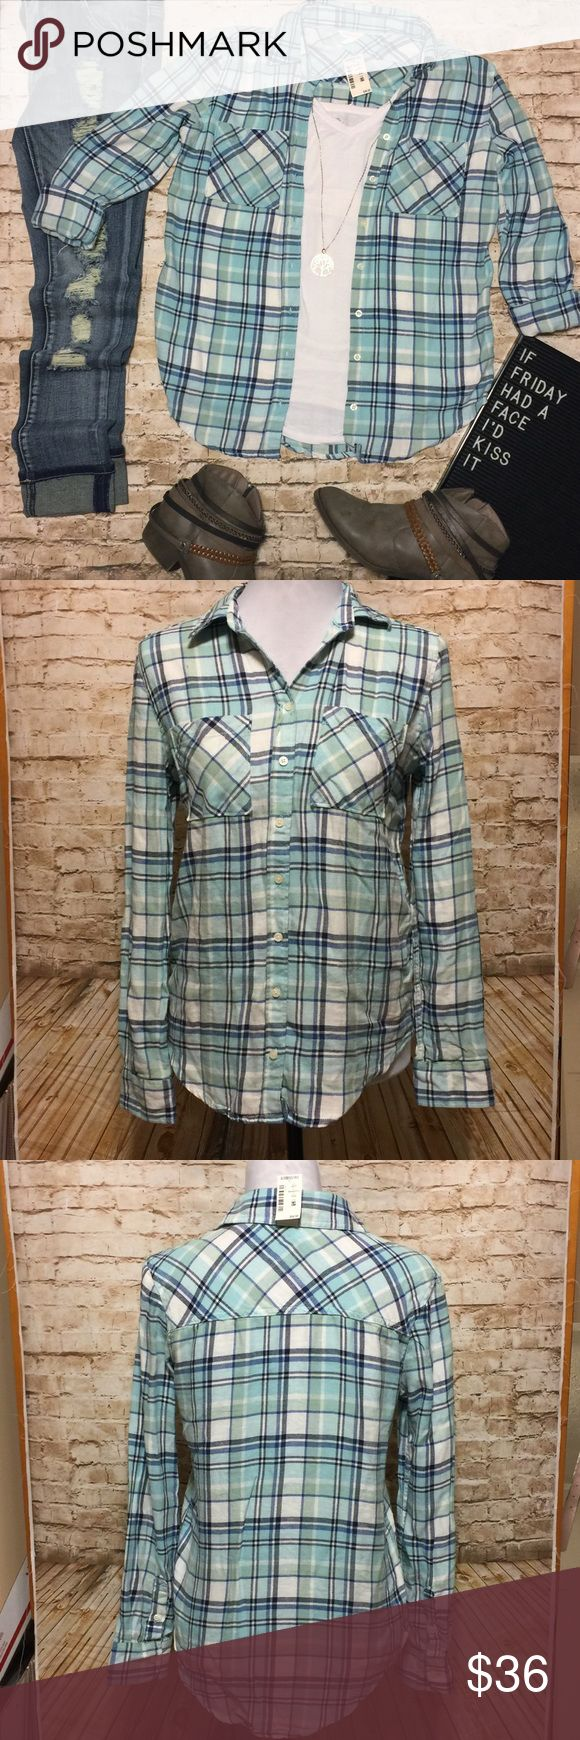 "NWT Aeropostale Plaid Flannel Shirt Super cute plaid flannel button down shirt by Aeropostale. Turquoise, light blue, navy, and white. New with tags and flawless condition. Looks perfect with skinny jeans and booties.   Measurements lying flat: • Bust: 19"" across from armpit to armpit  • Length: 26"" Aeropostale Tops Button Down Shirts"